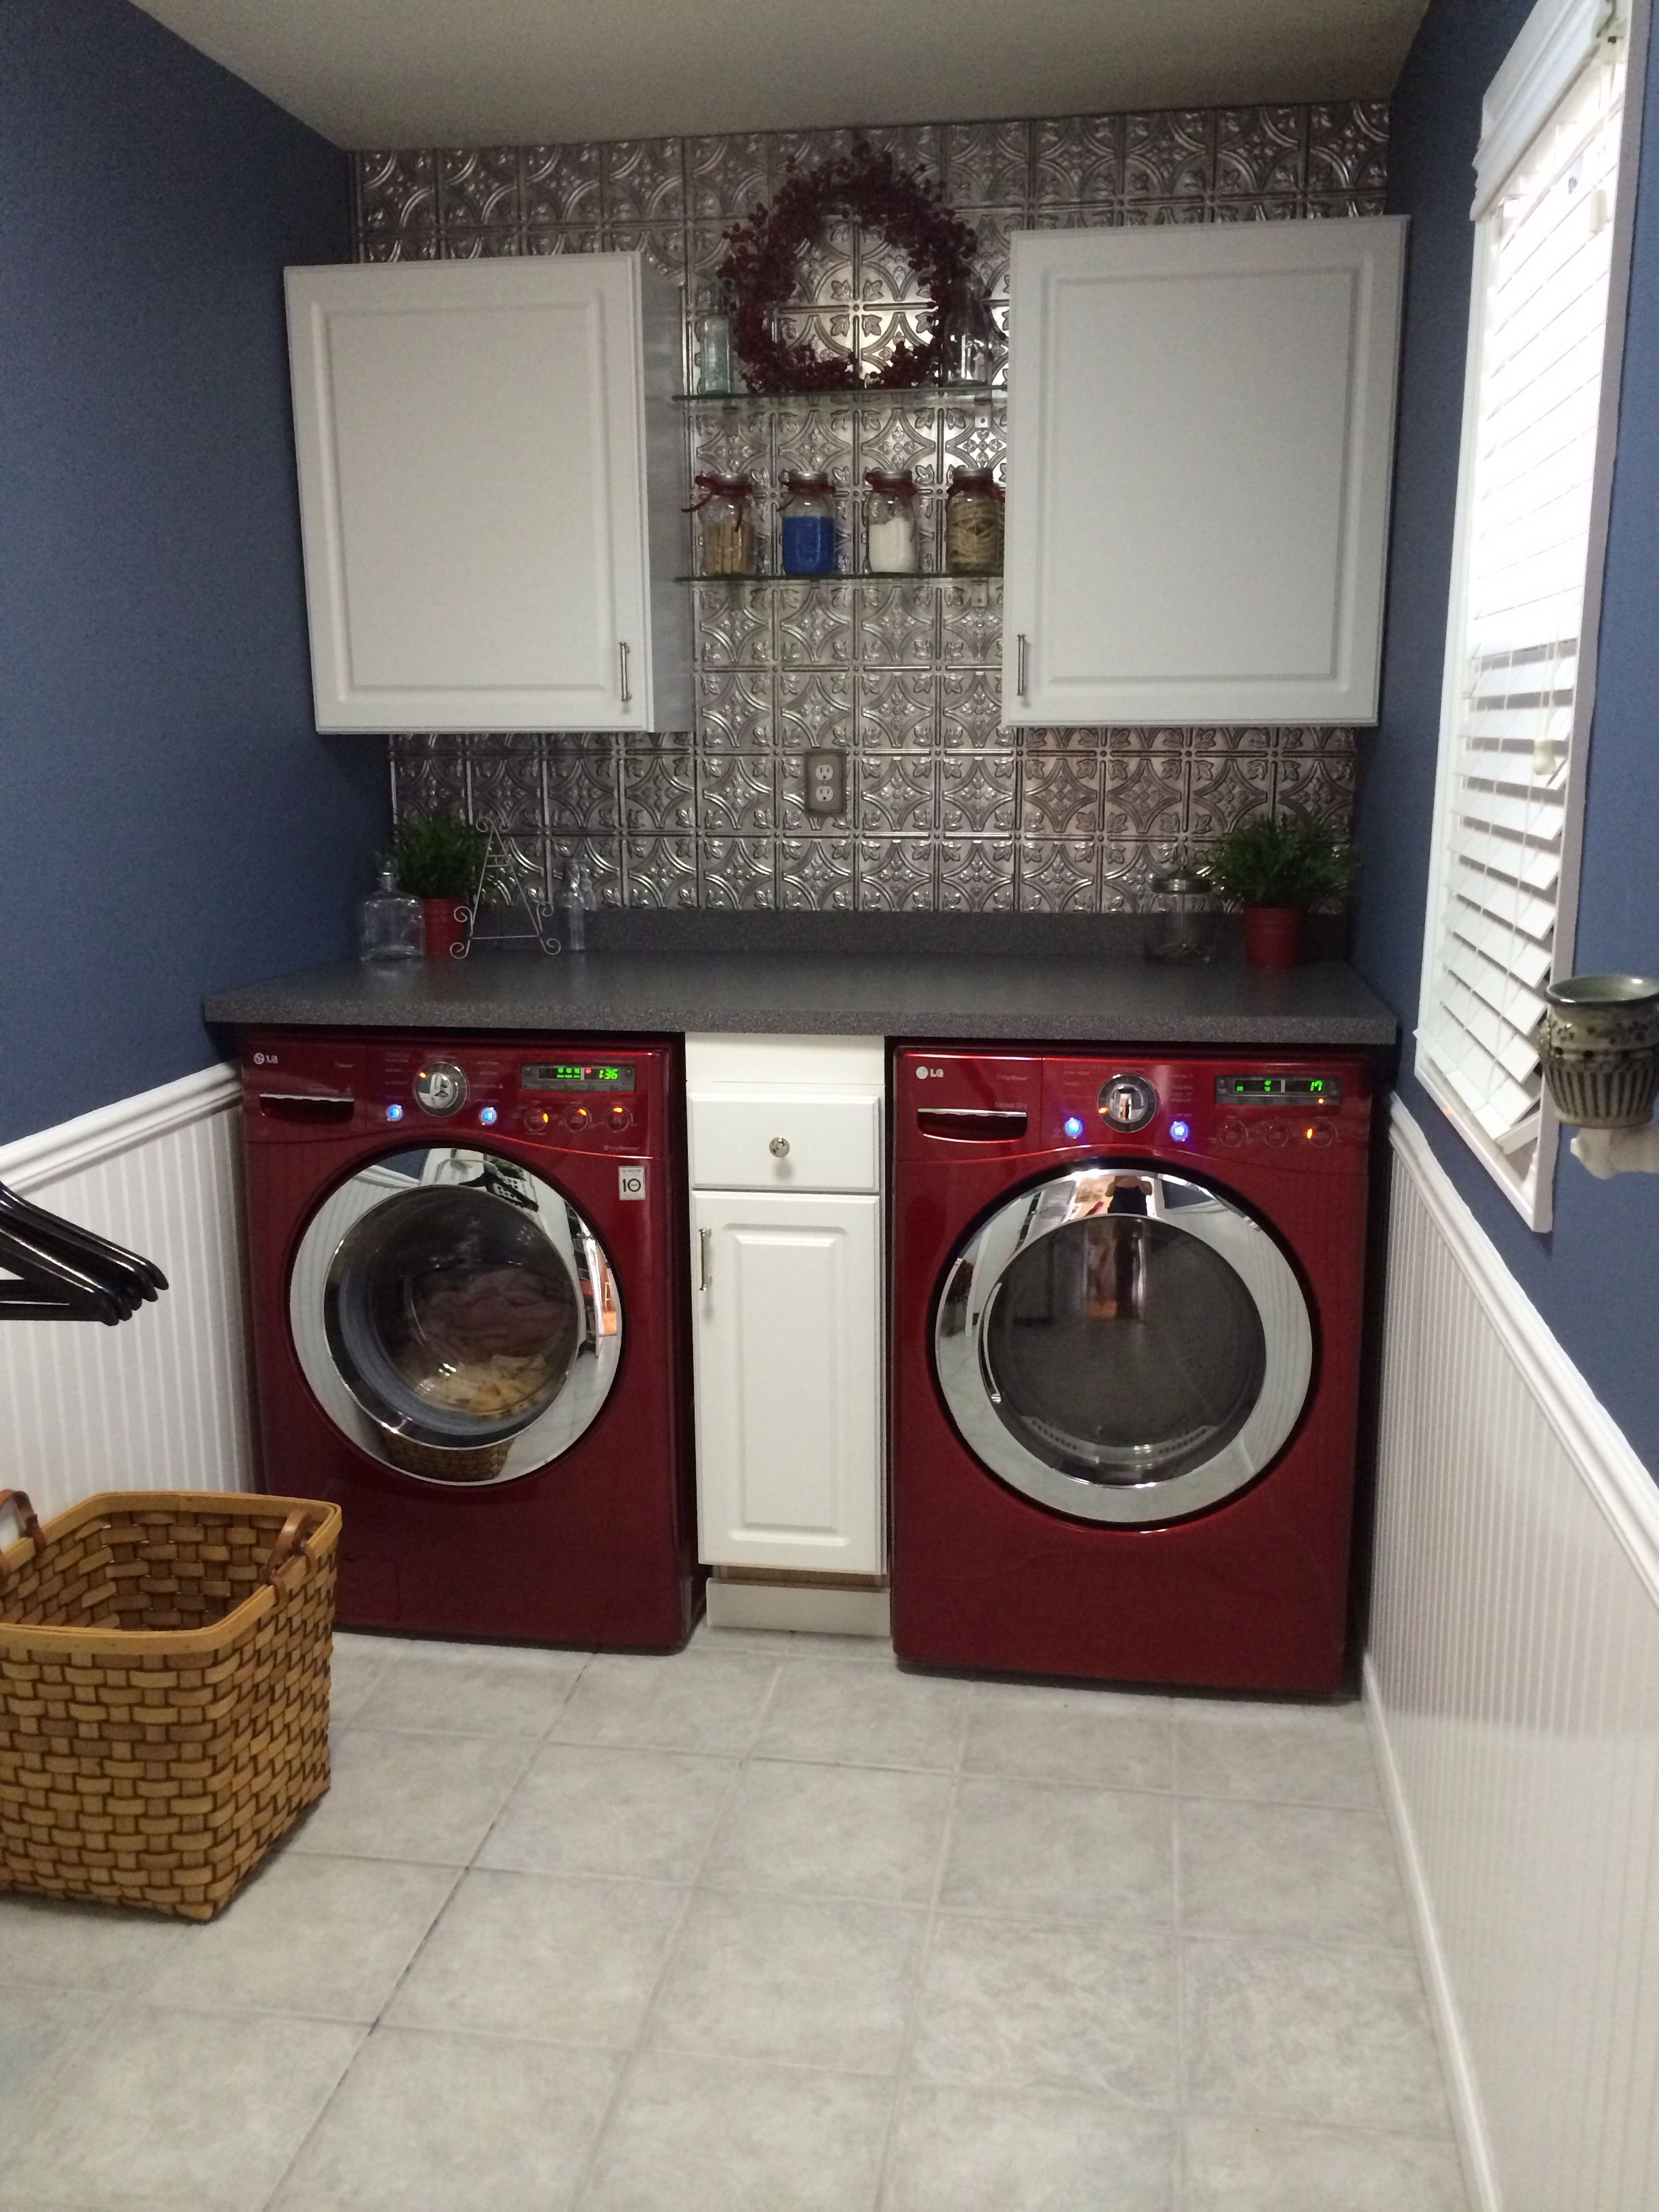 Laundry Room Is Finally Complete Tin Backsplash Formica Counters And Cherry Red Lg Washer Dryer